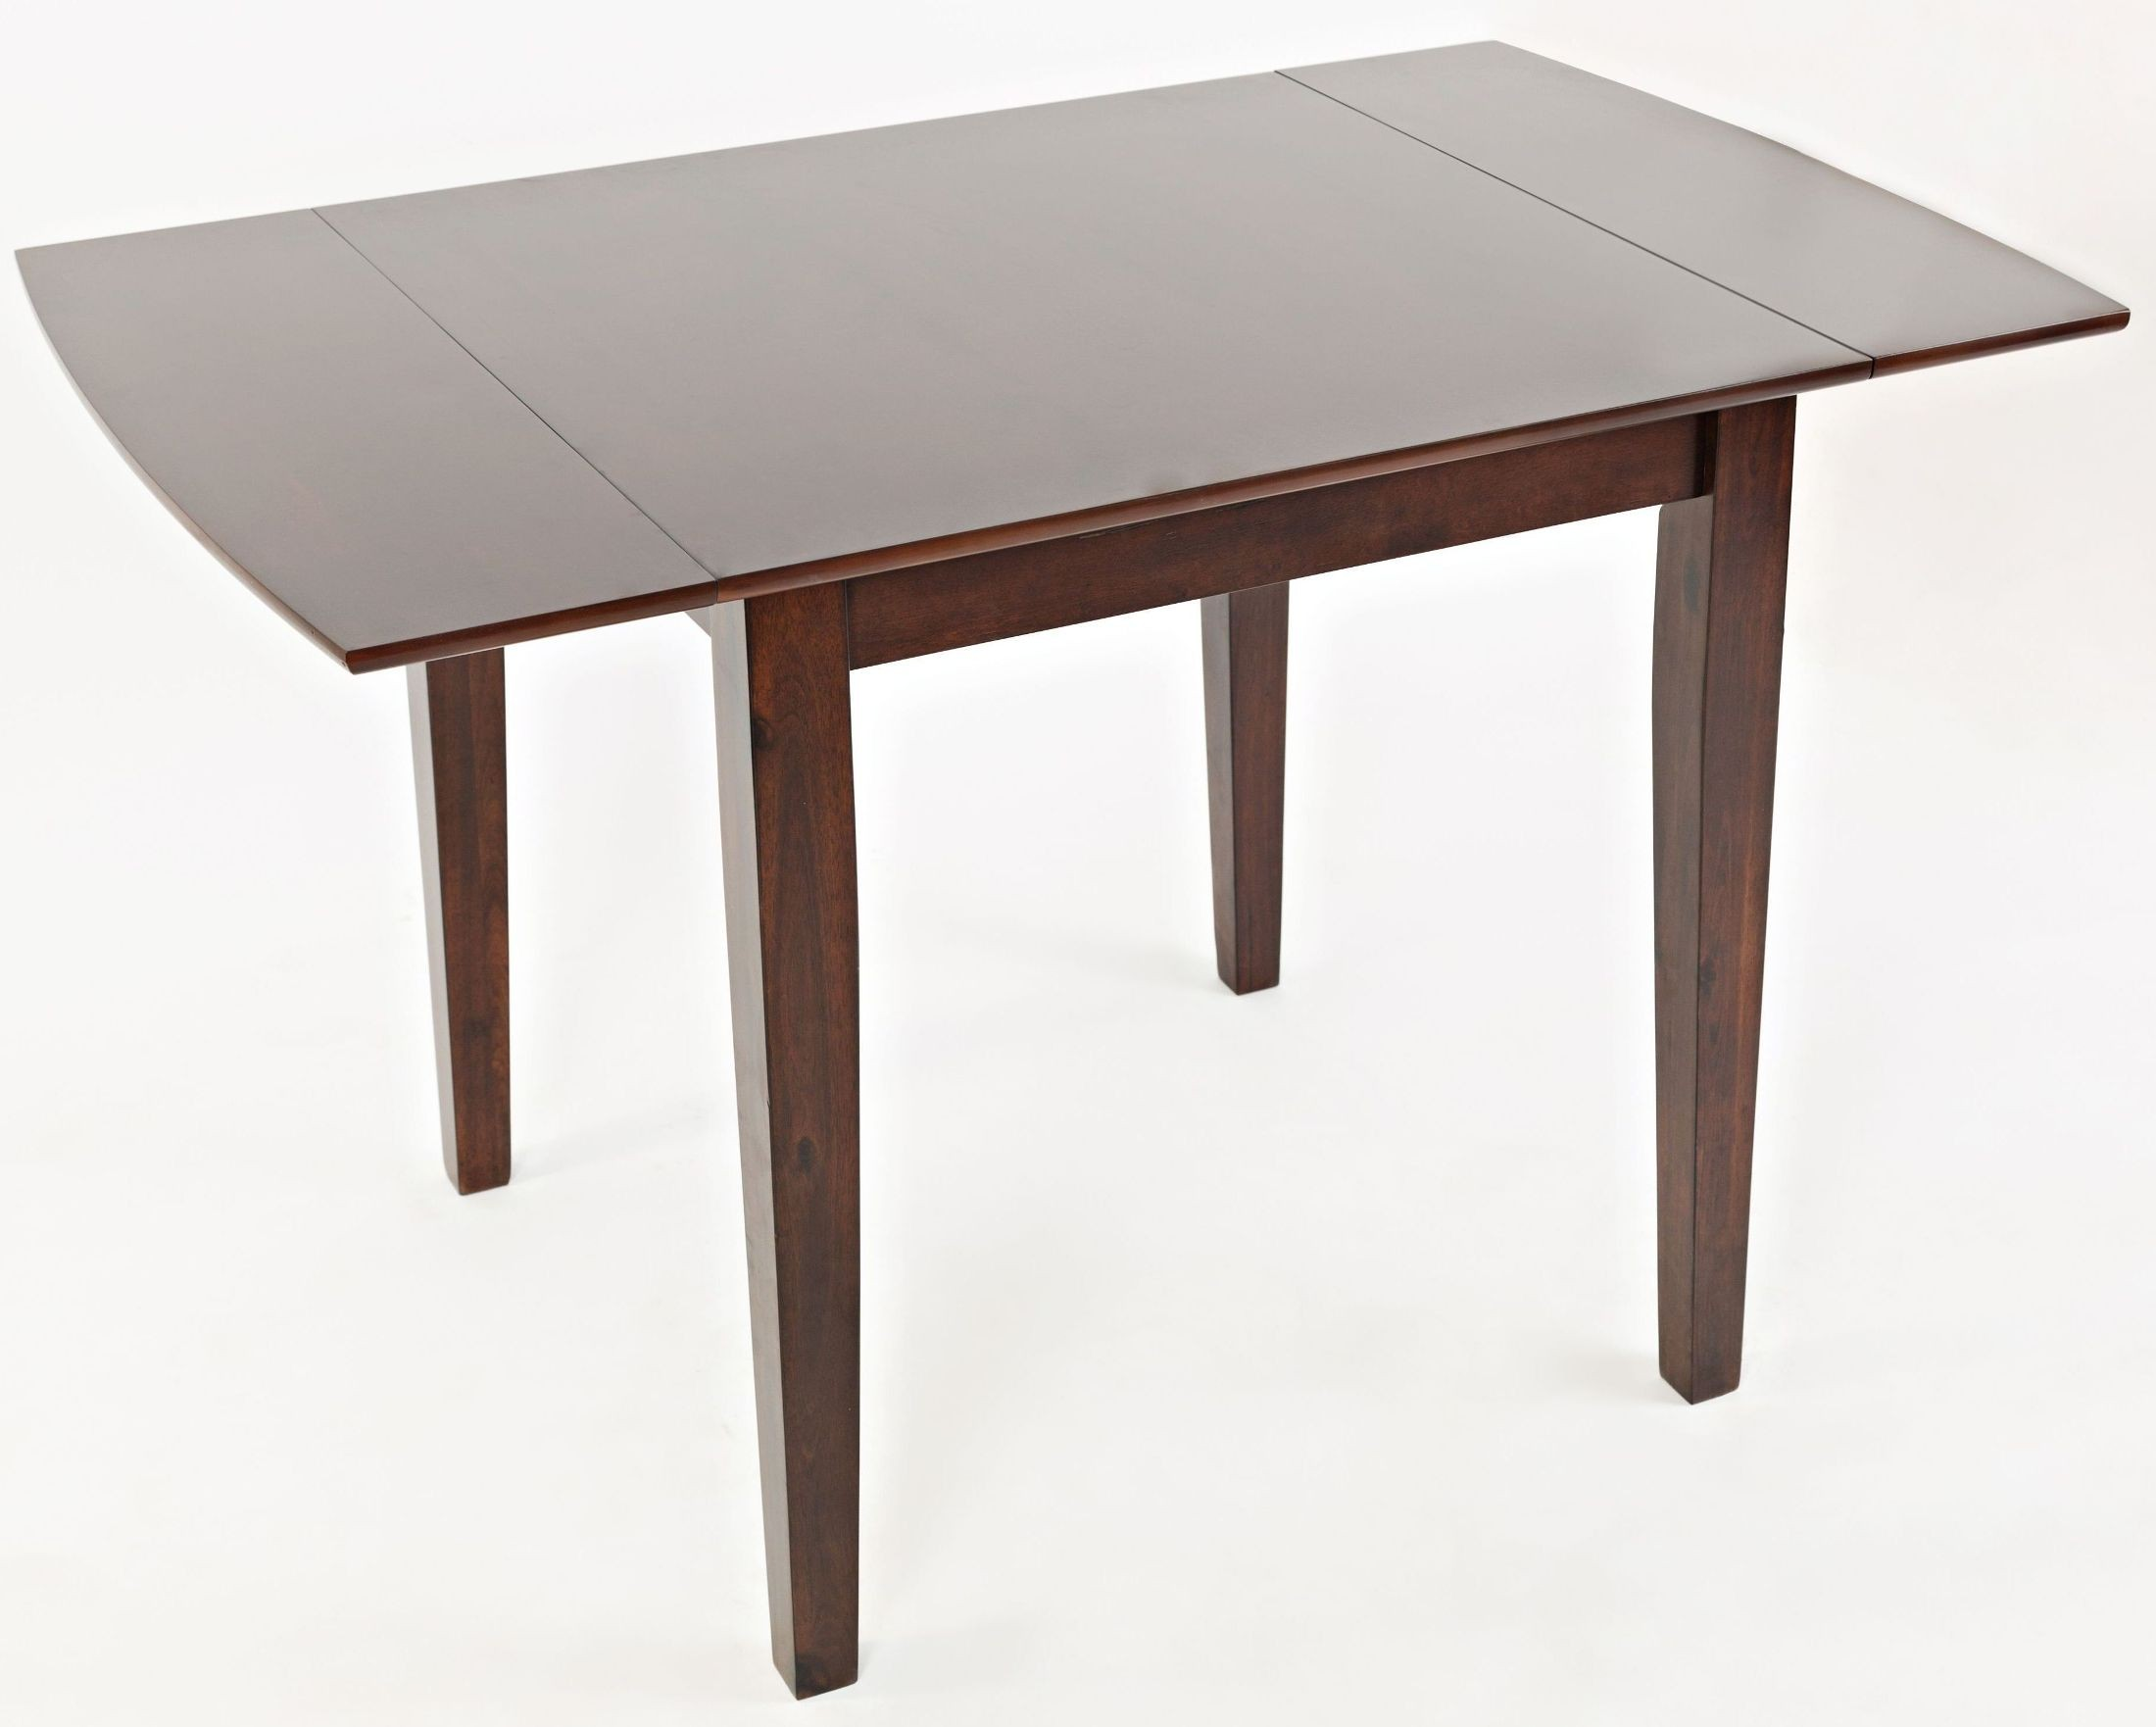 Everyday classics cherry extendable dining table from for Cherry dining table